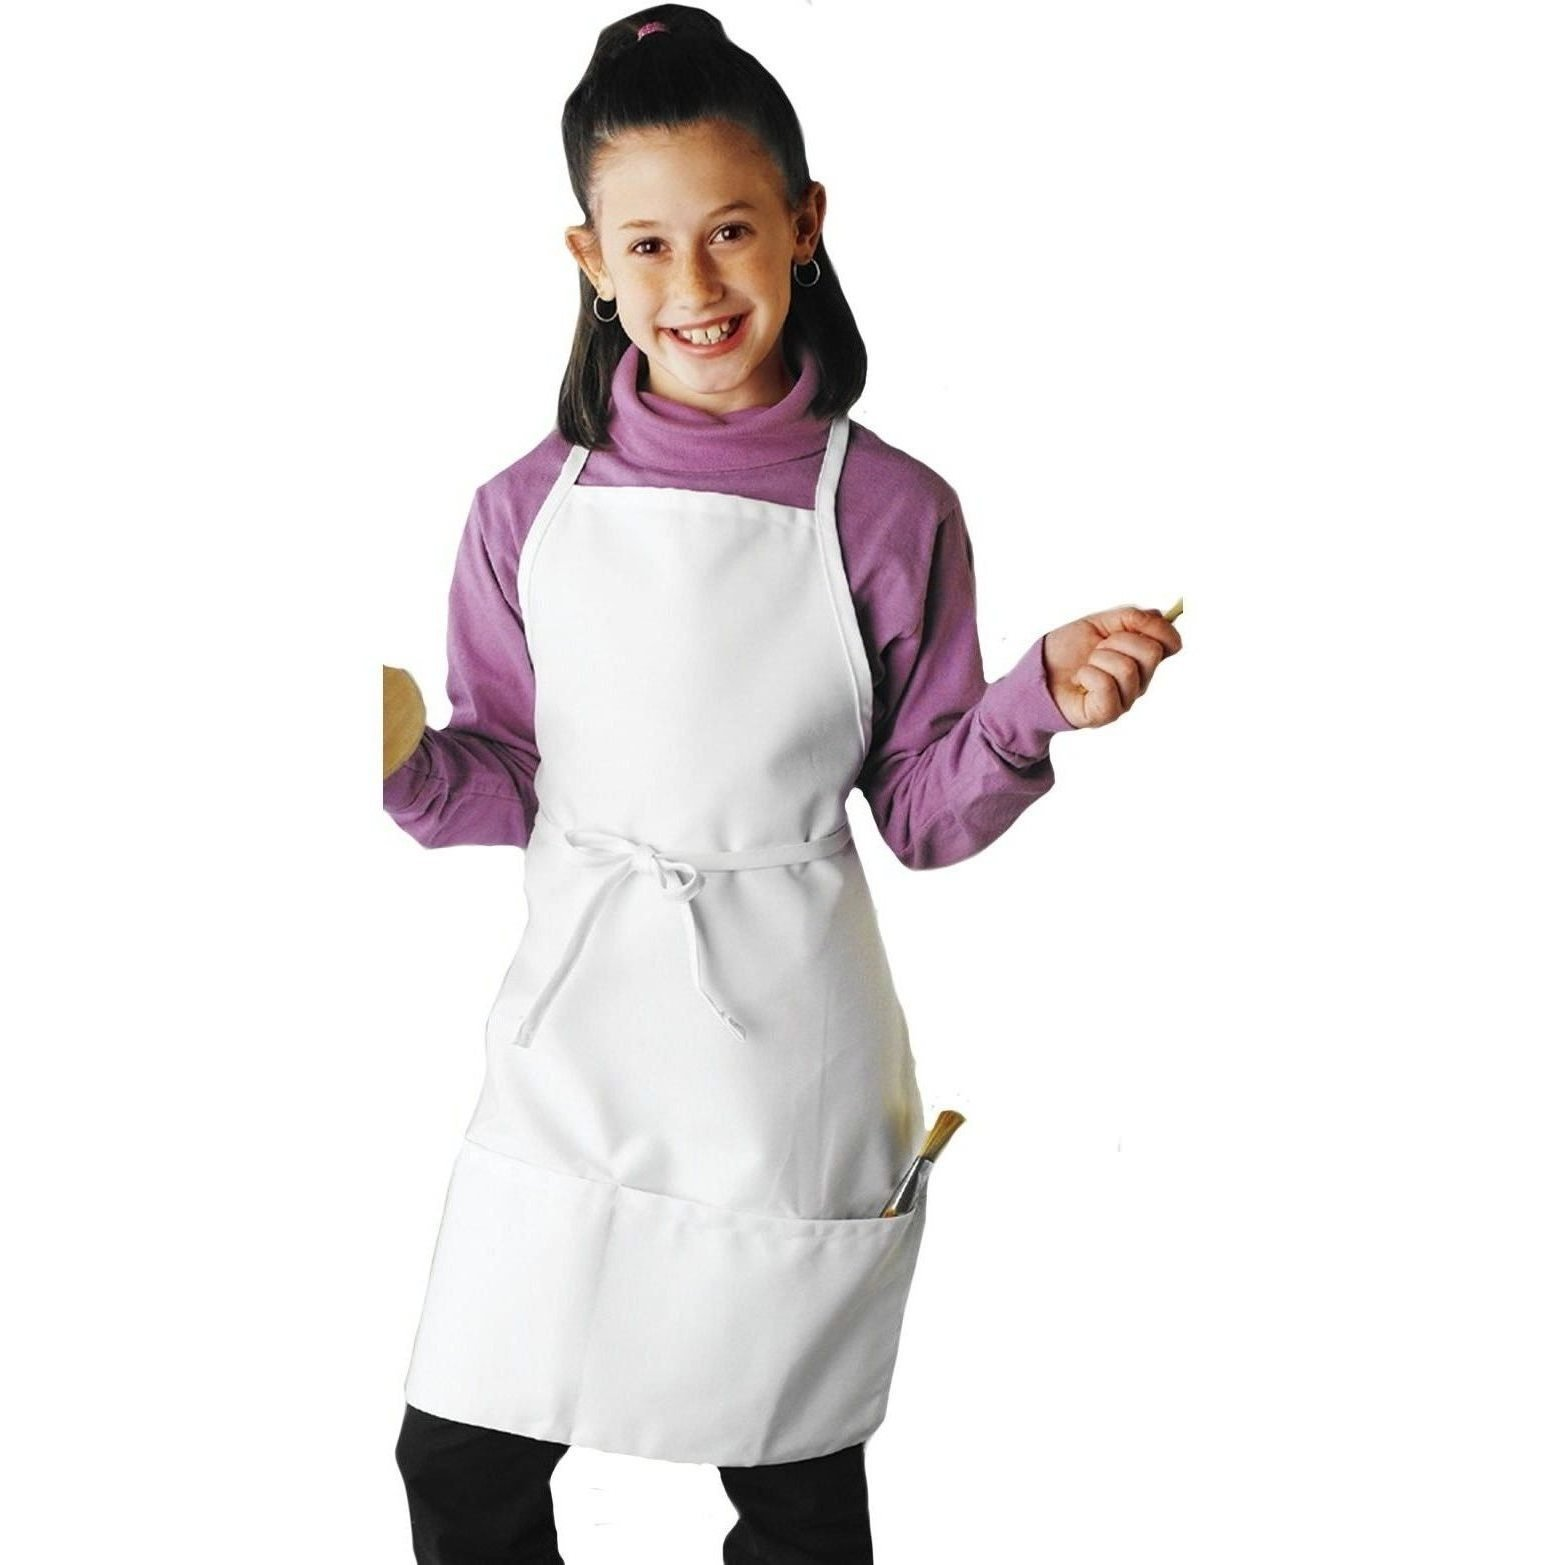 Uncommon Threads Youth Apron in White - One Size